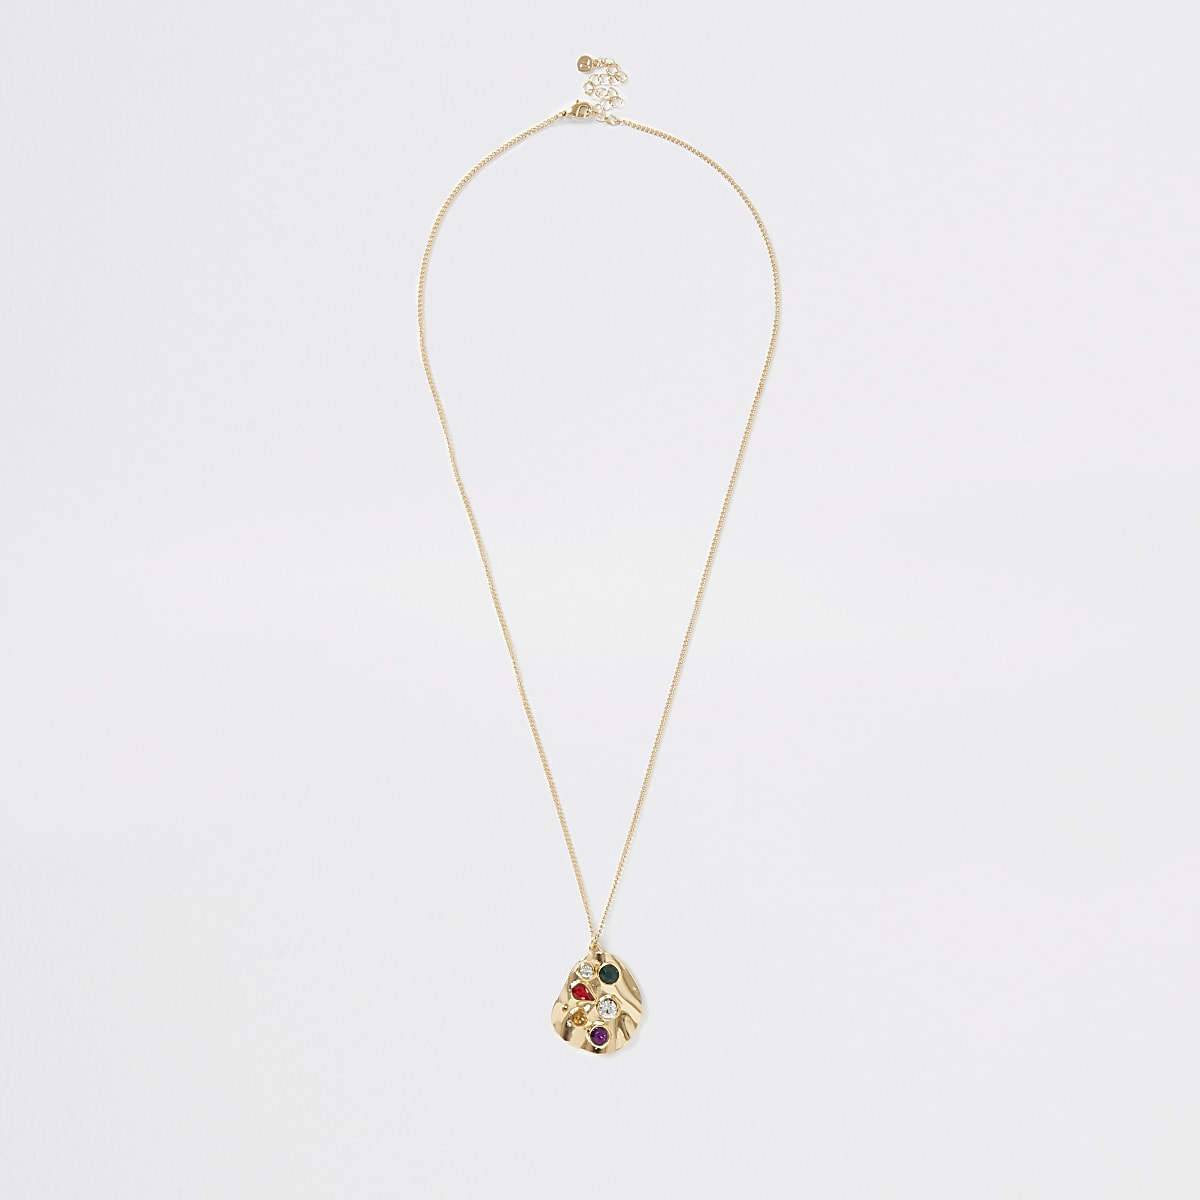 Gold colour stone pendant necklace